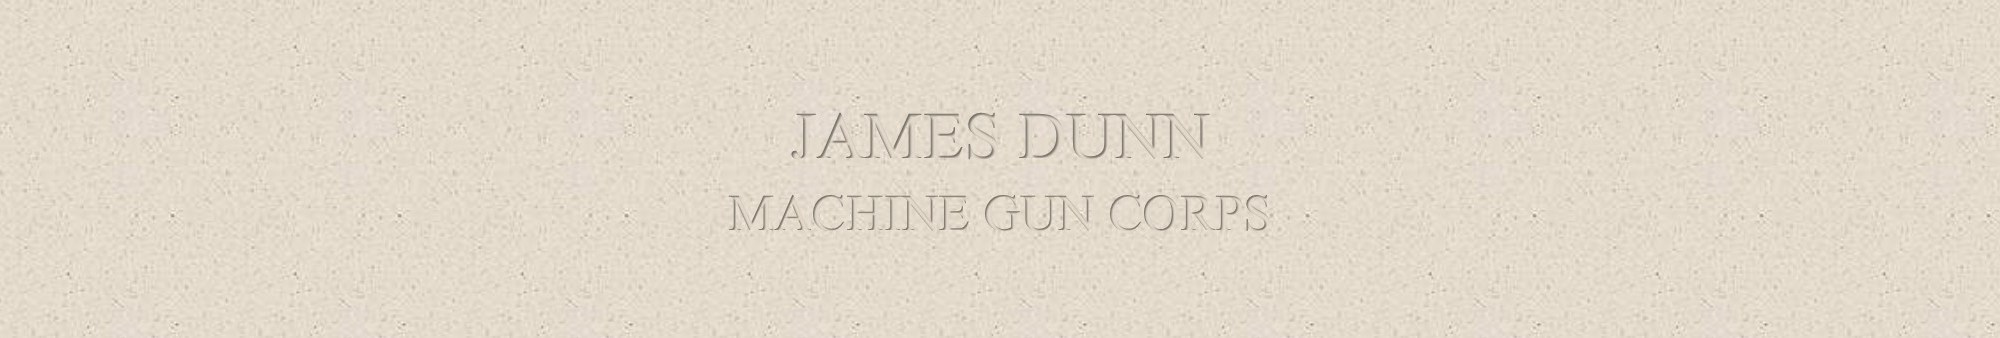 James Dunn Header